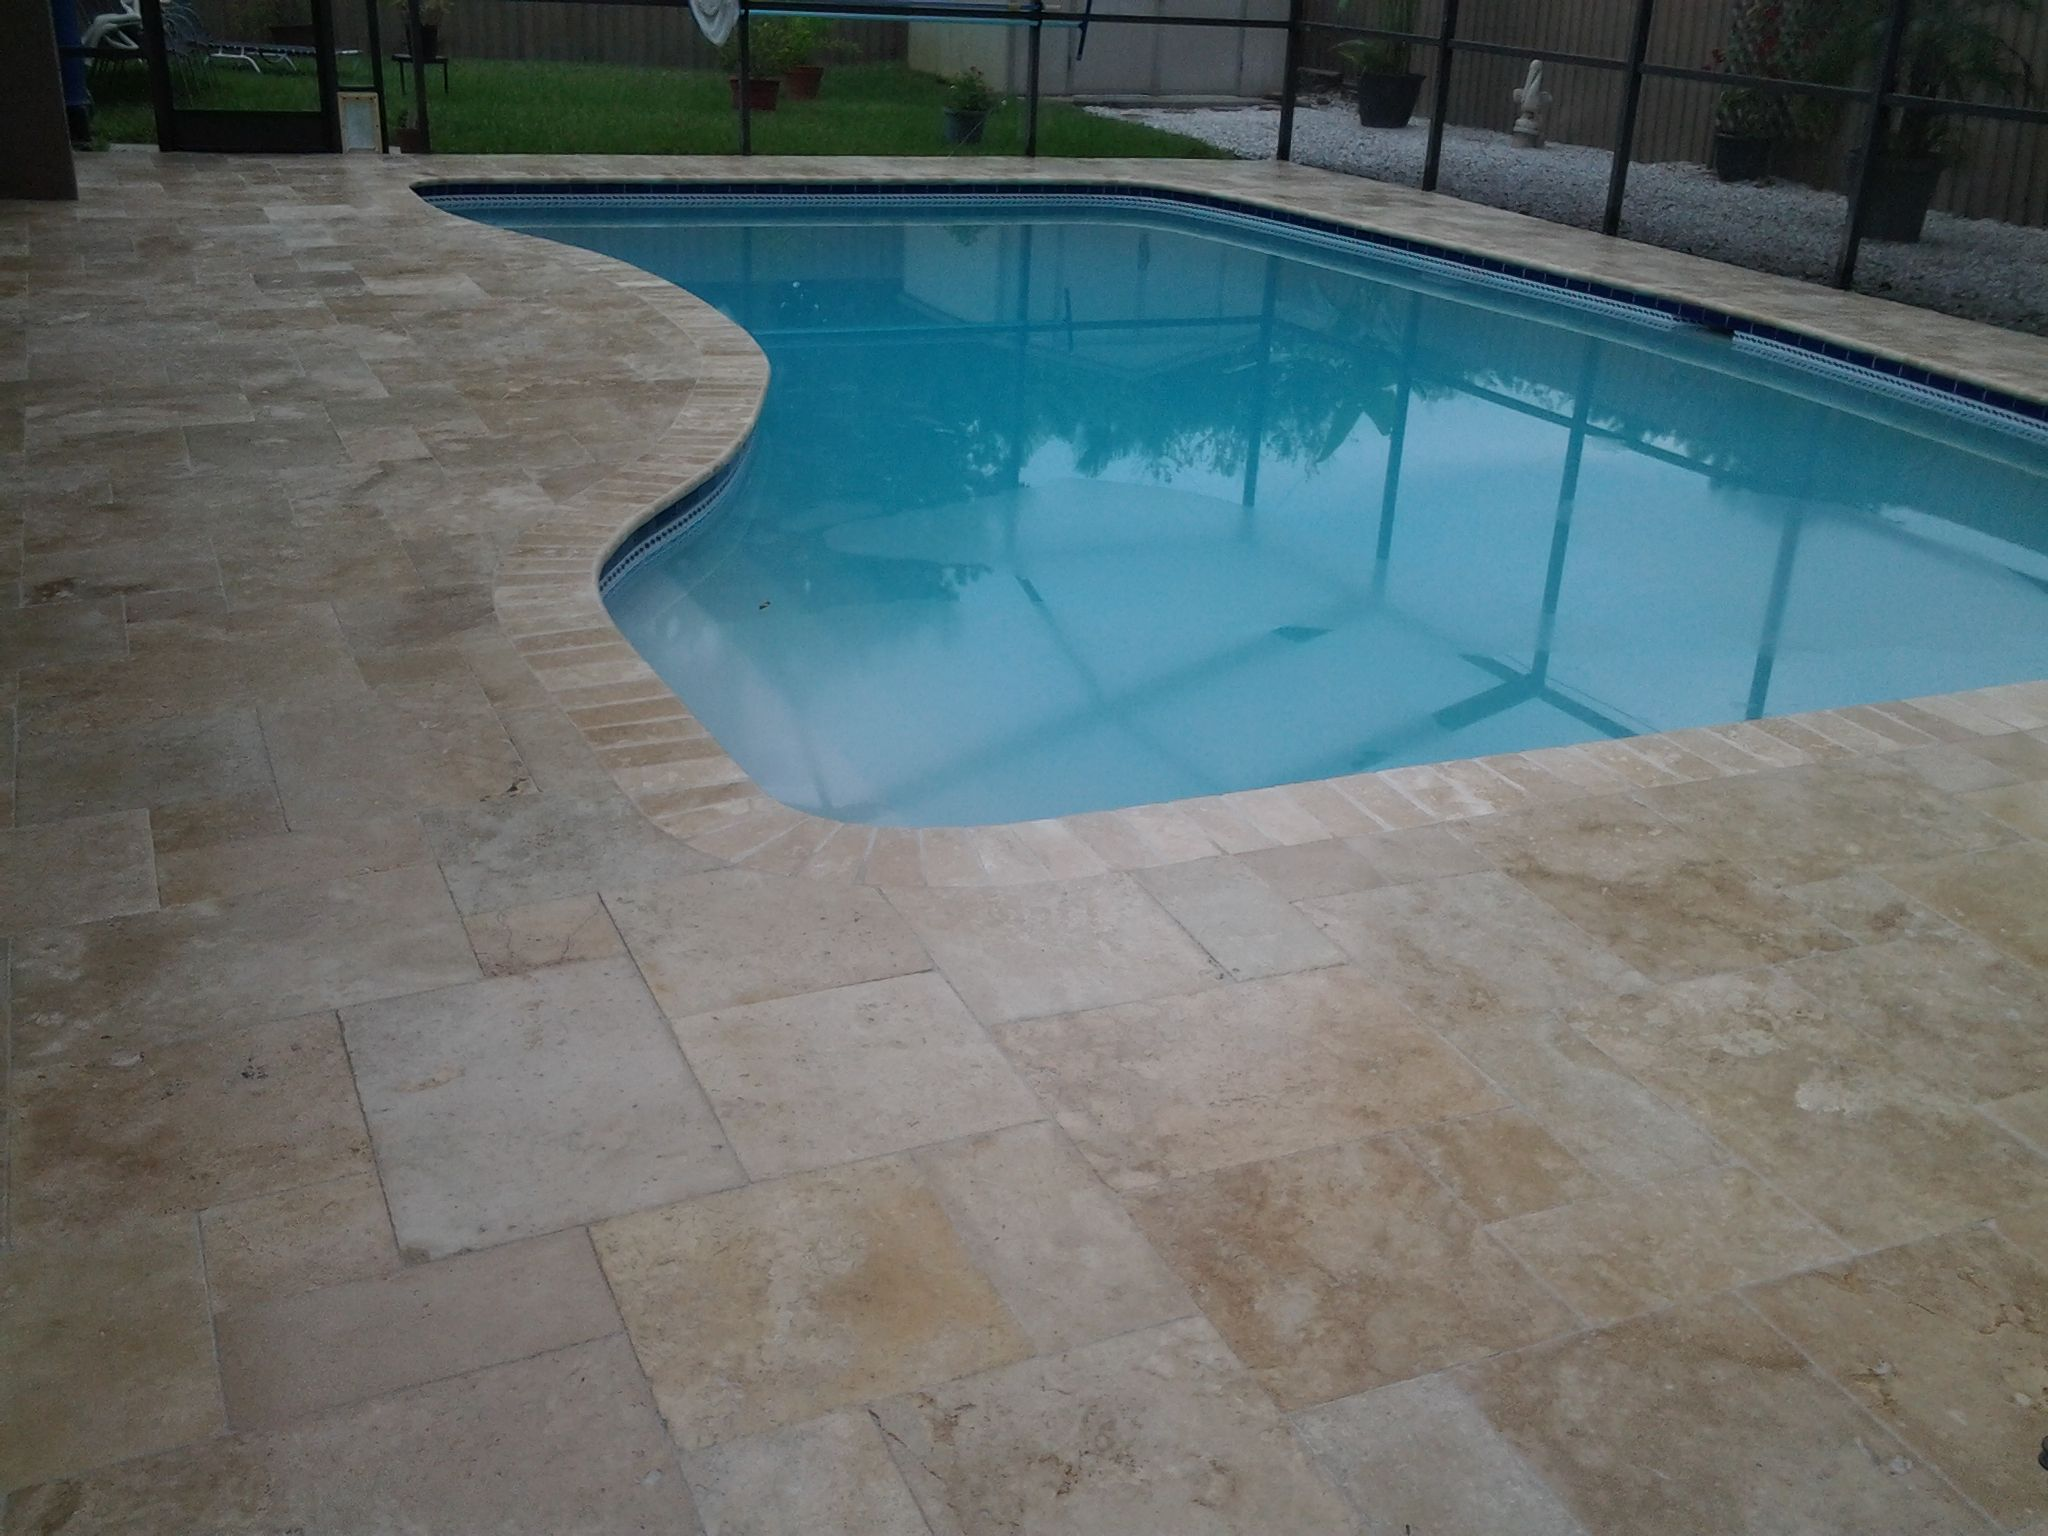 Travertine Pavers Pool Deck Installation In 2019